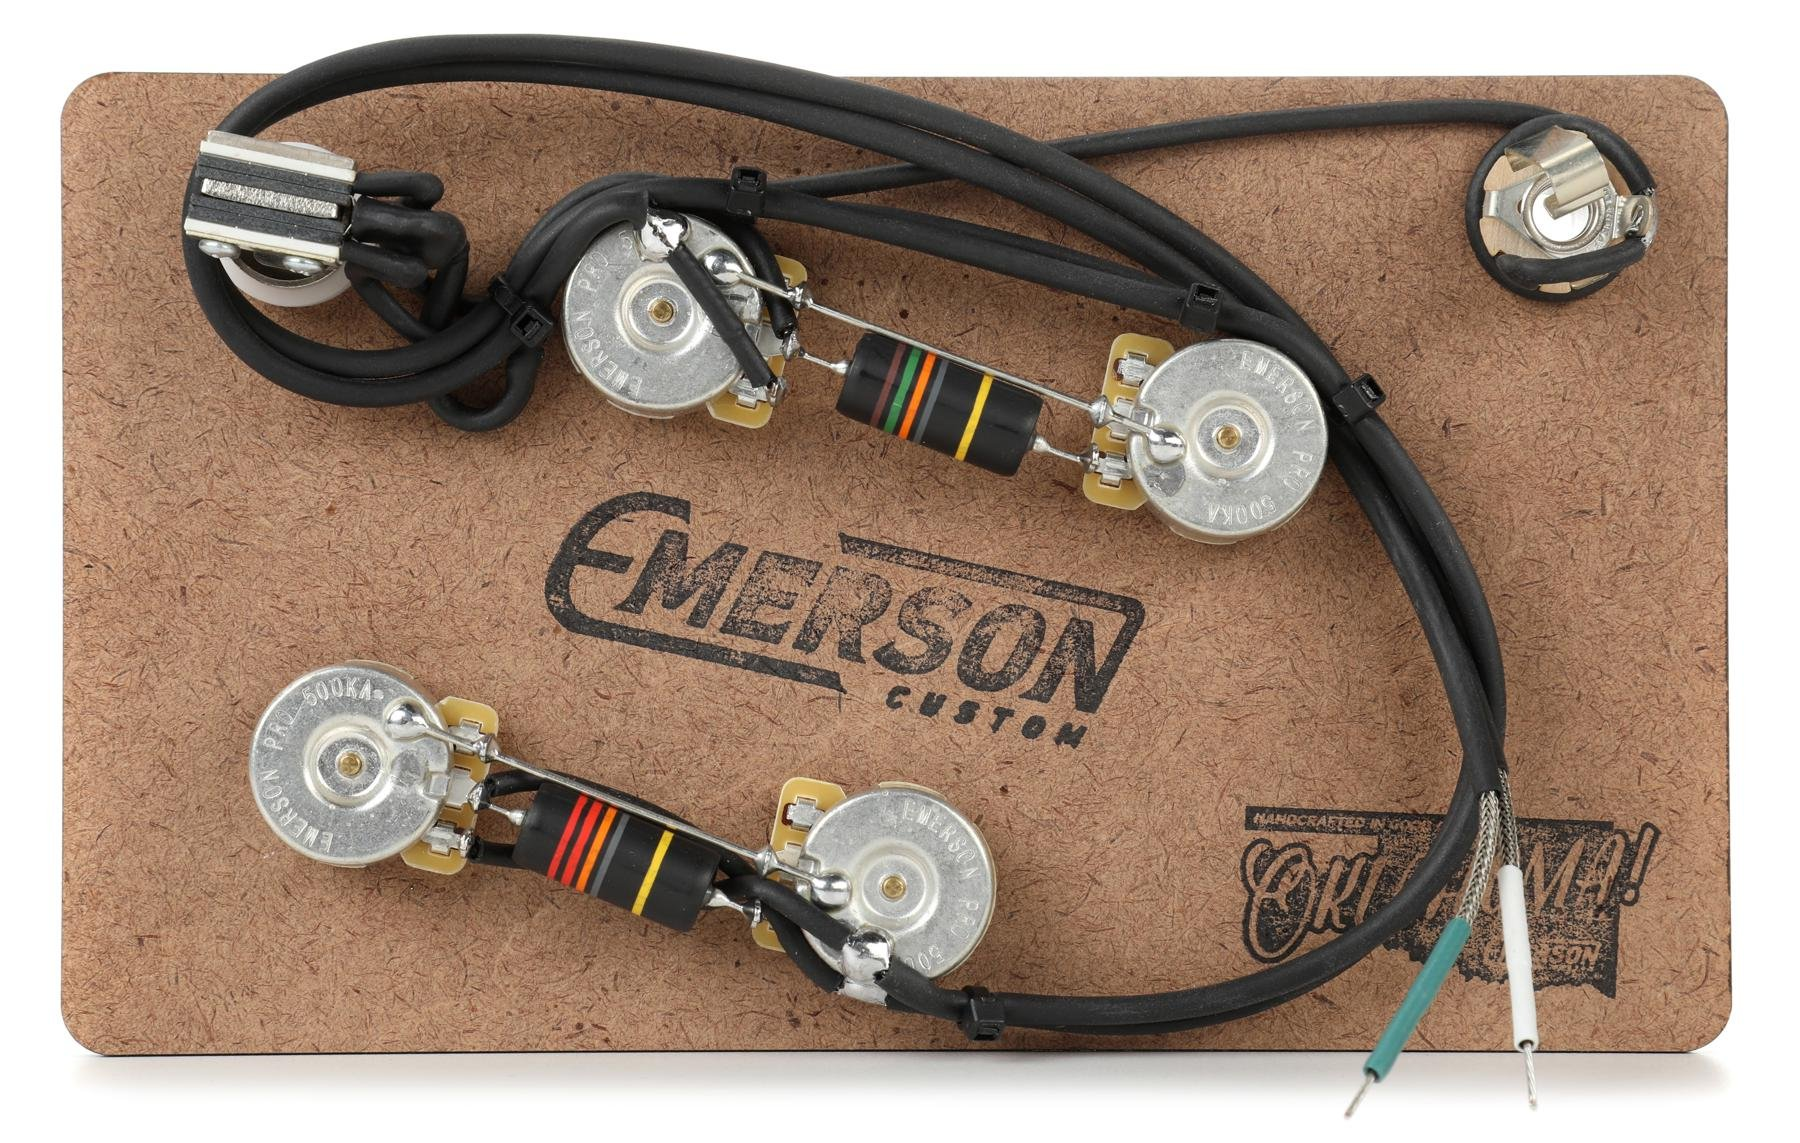 Emerson Custom Prewired Kit For Gibson Es 335 Sweetwater 355 Wiring Diagram Image 1